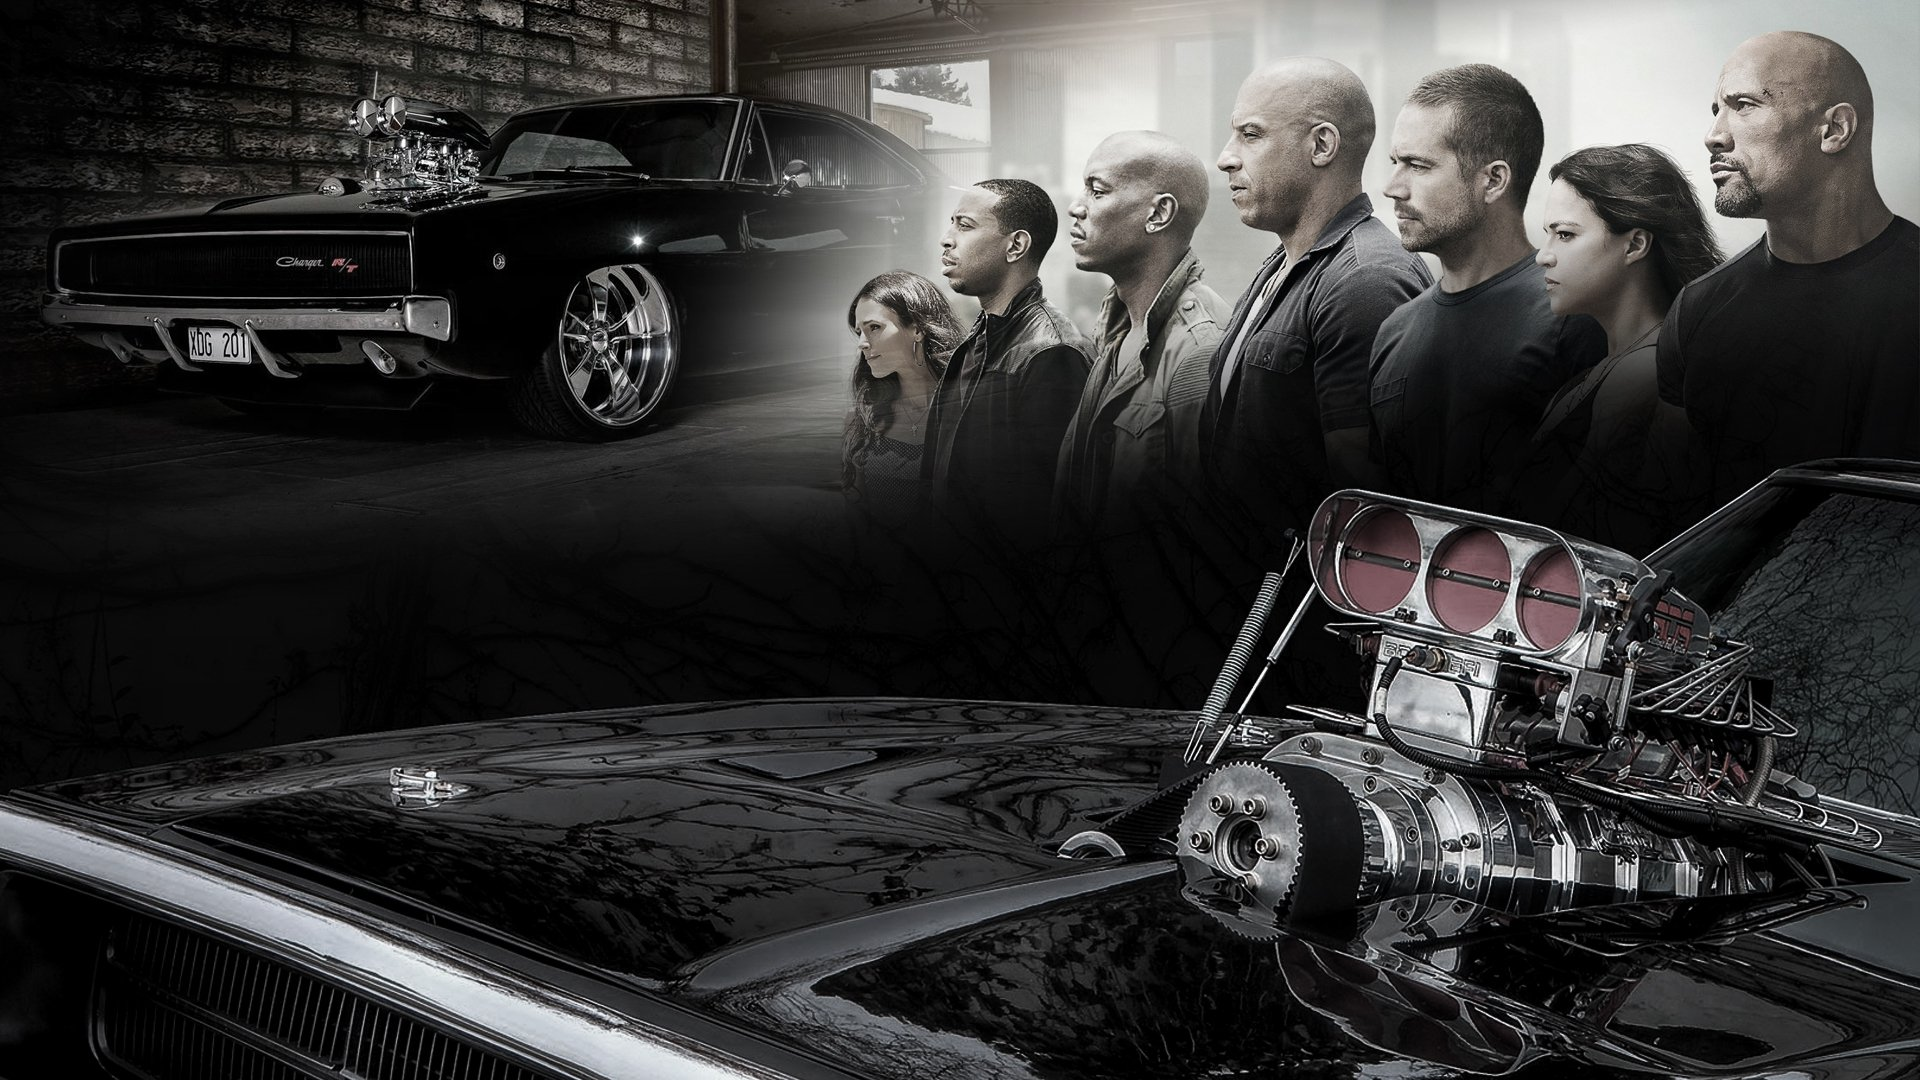 Furious 7 Backgrounds Pictures Images